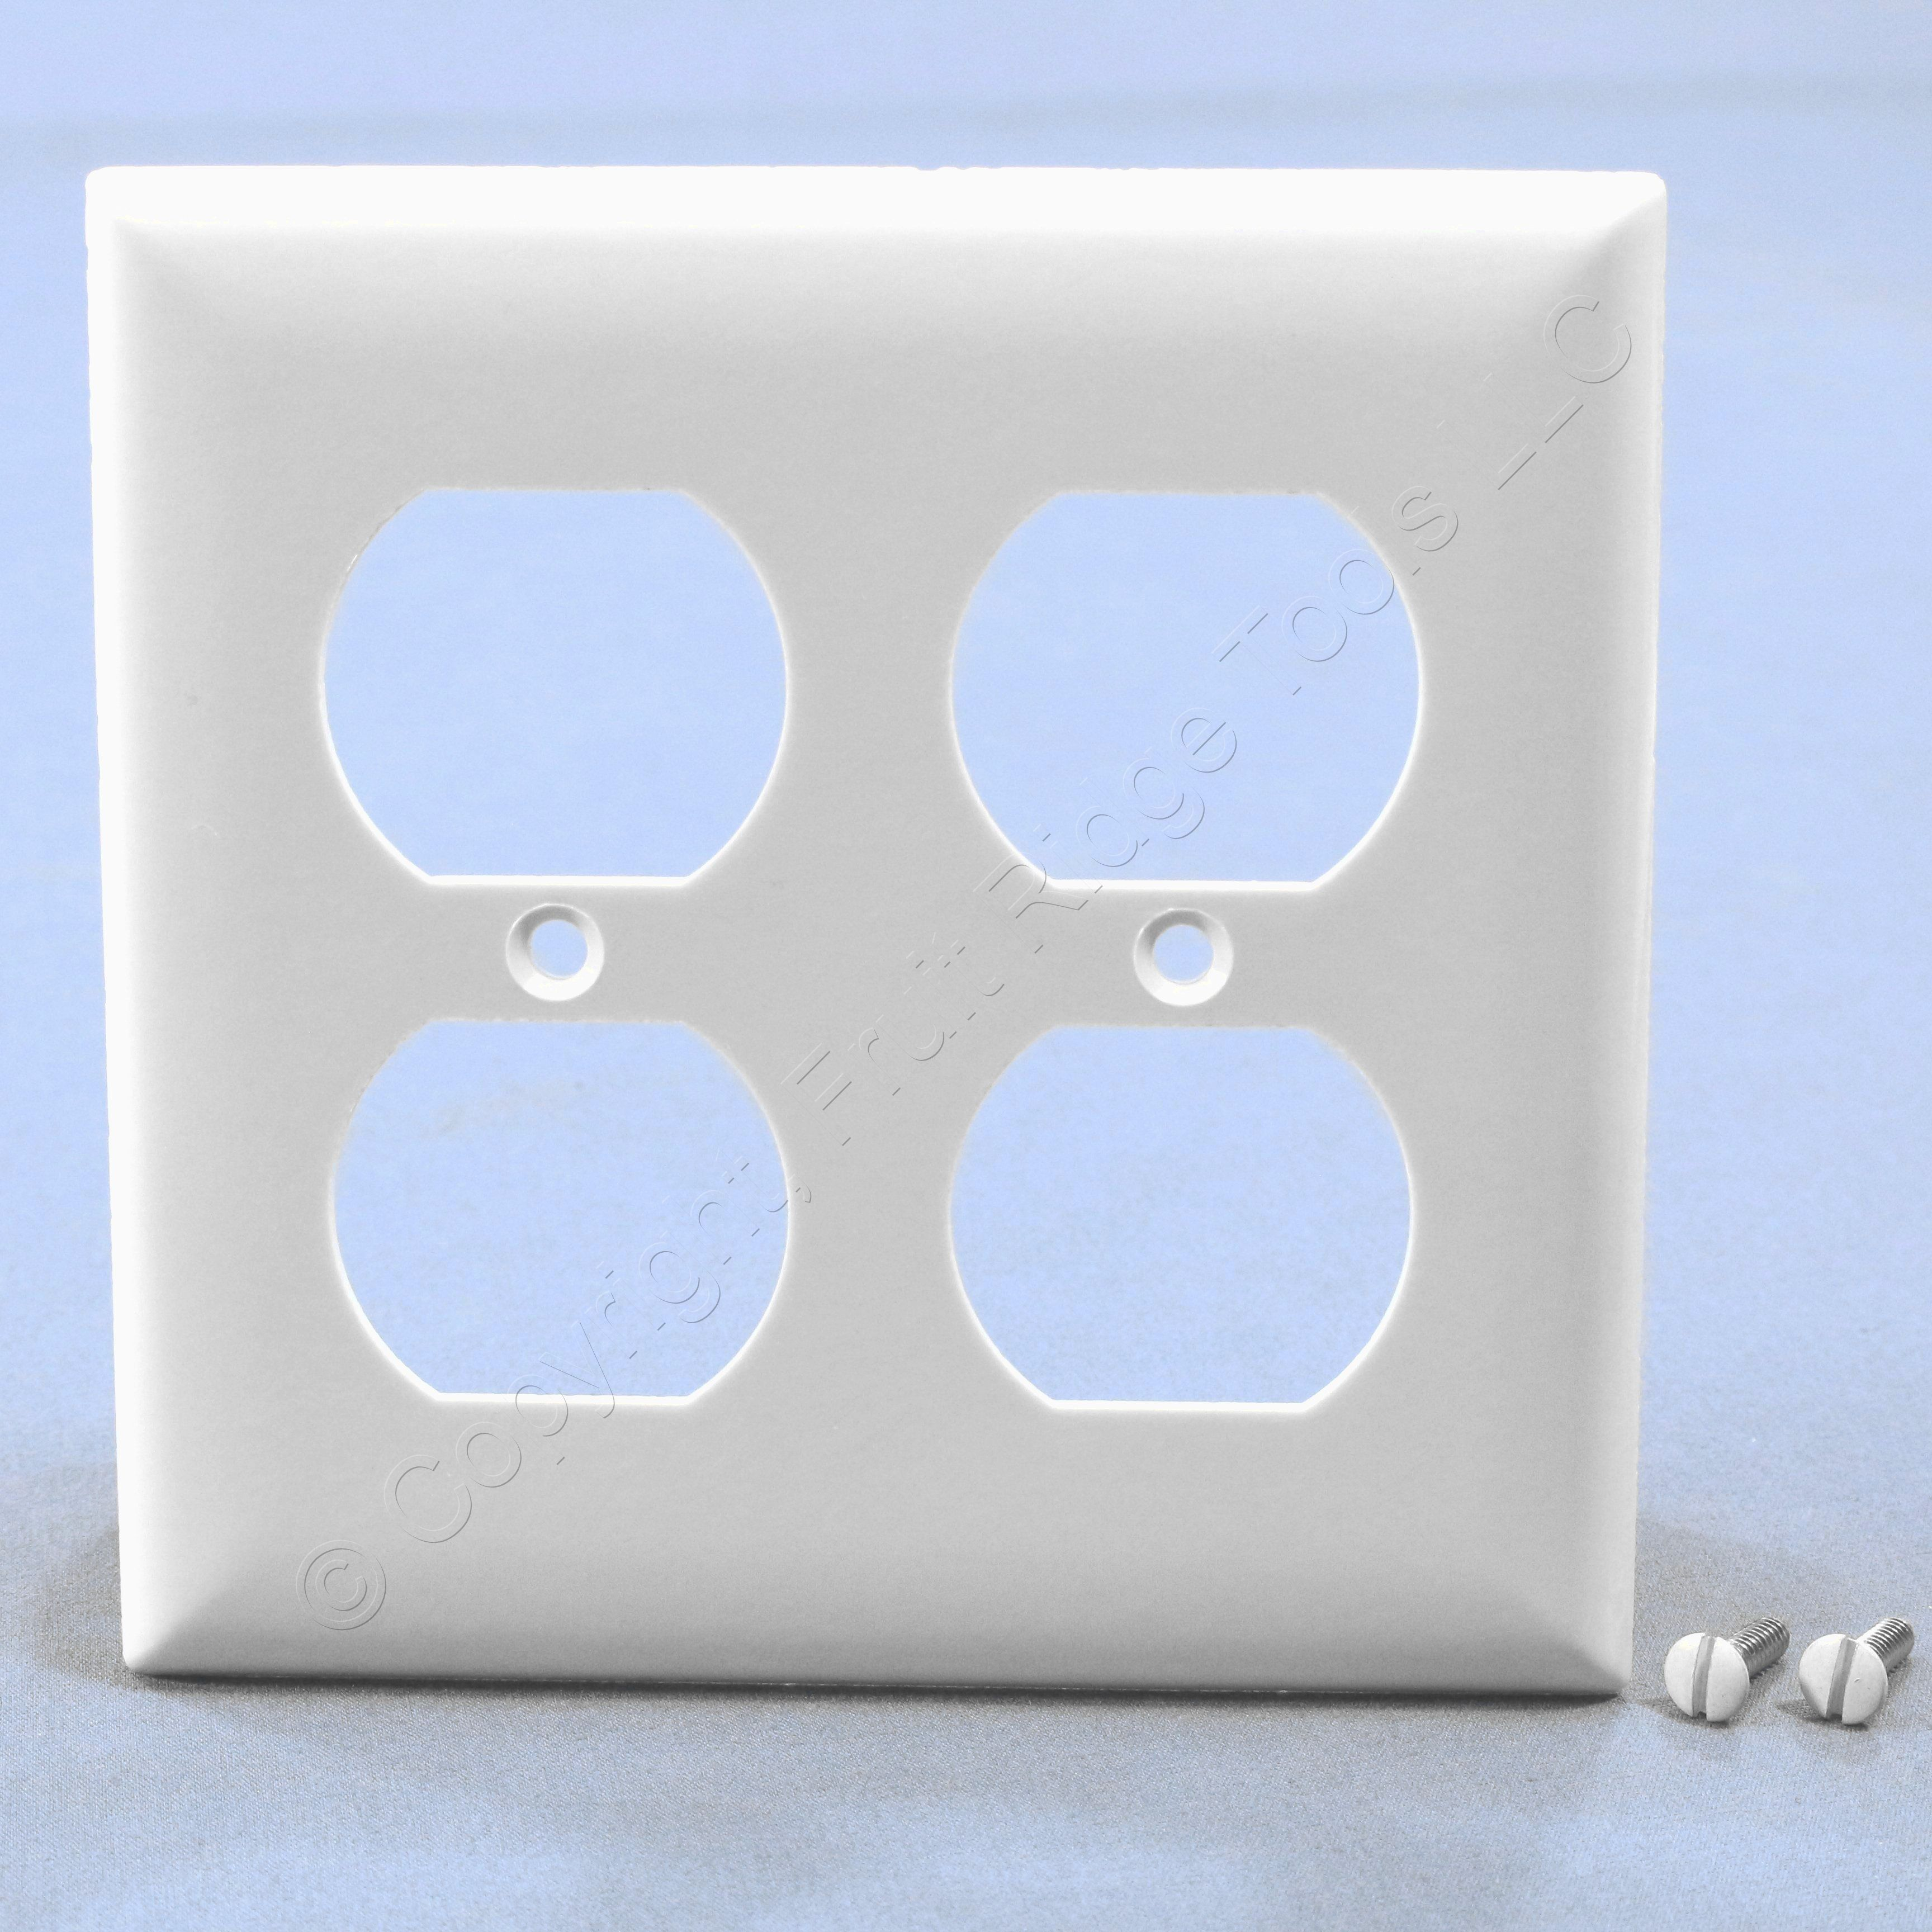 Pass & Seymour White Standard 2g Outlet Cover Duplex Receptacle ...